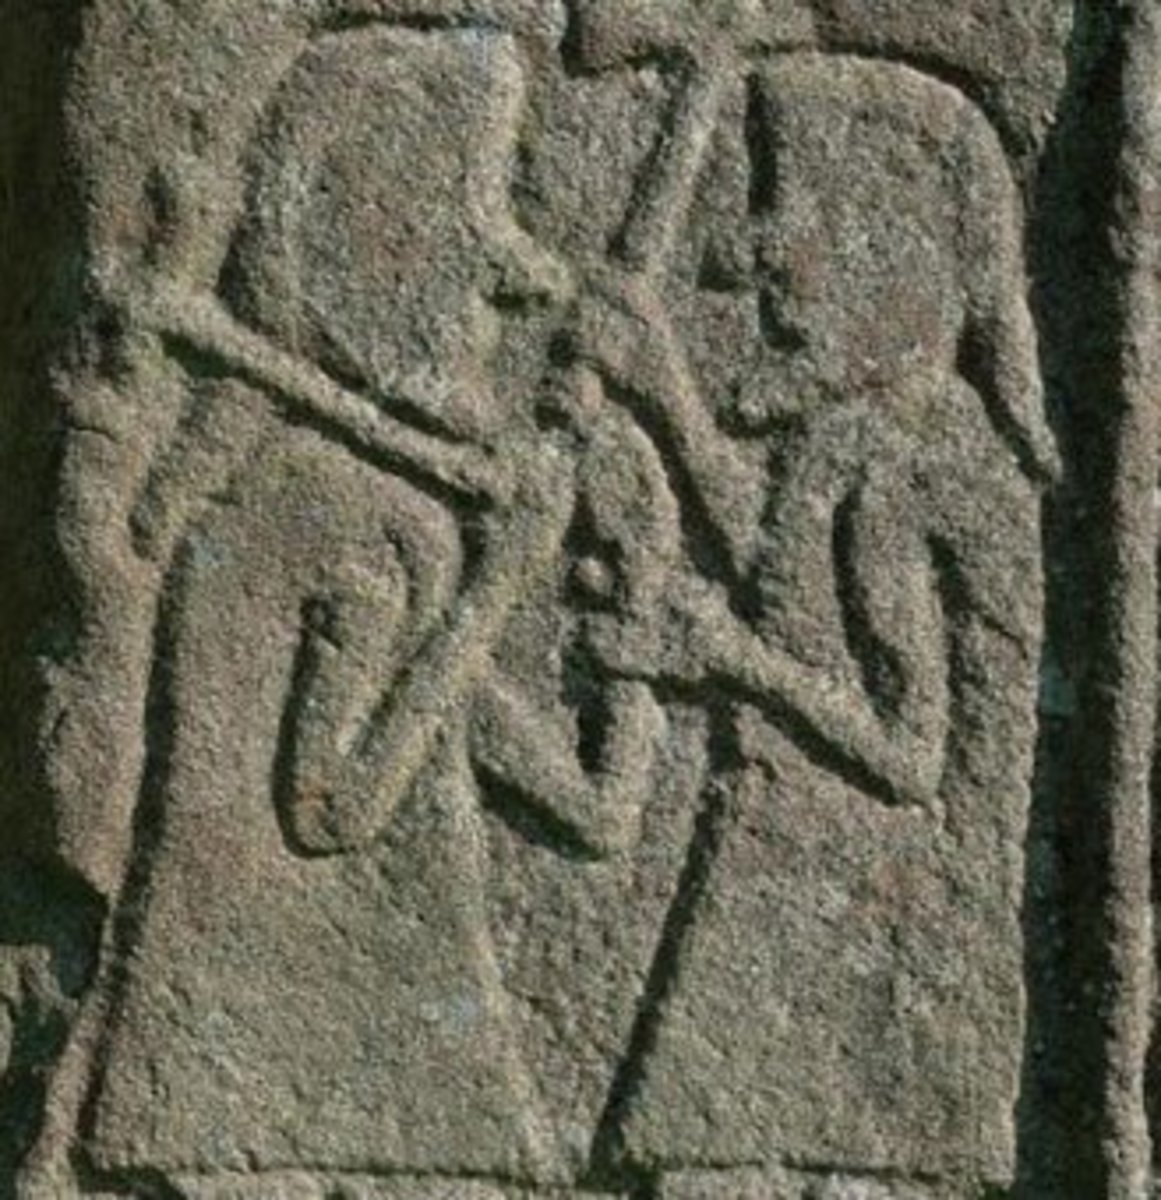 St. Vigeans Stone - carvings by the Picts.